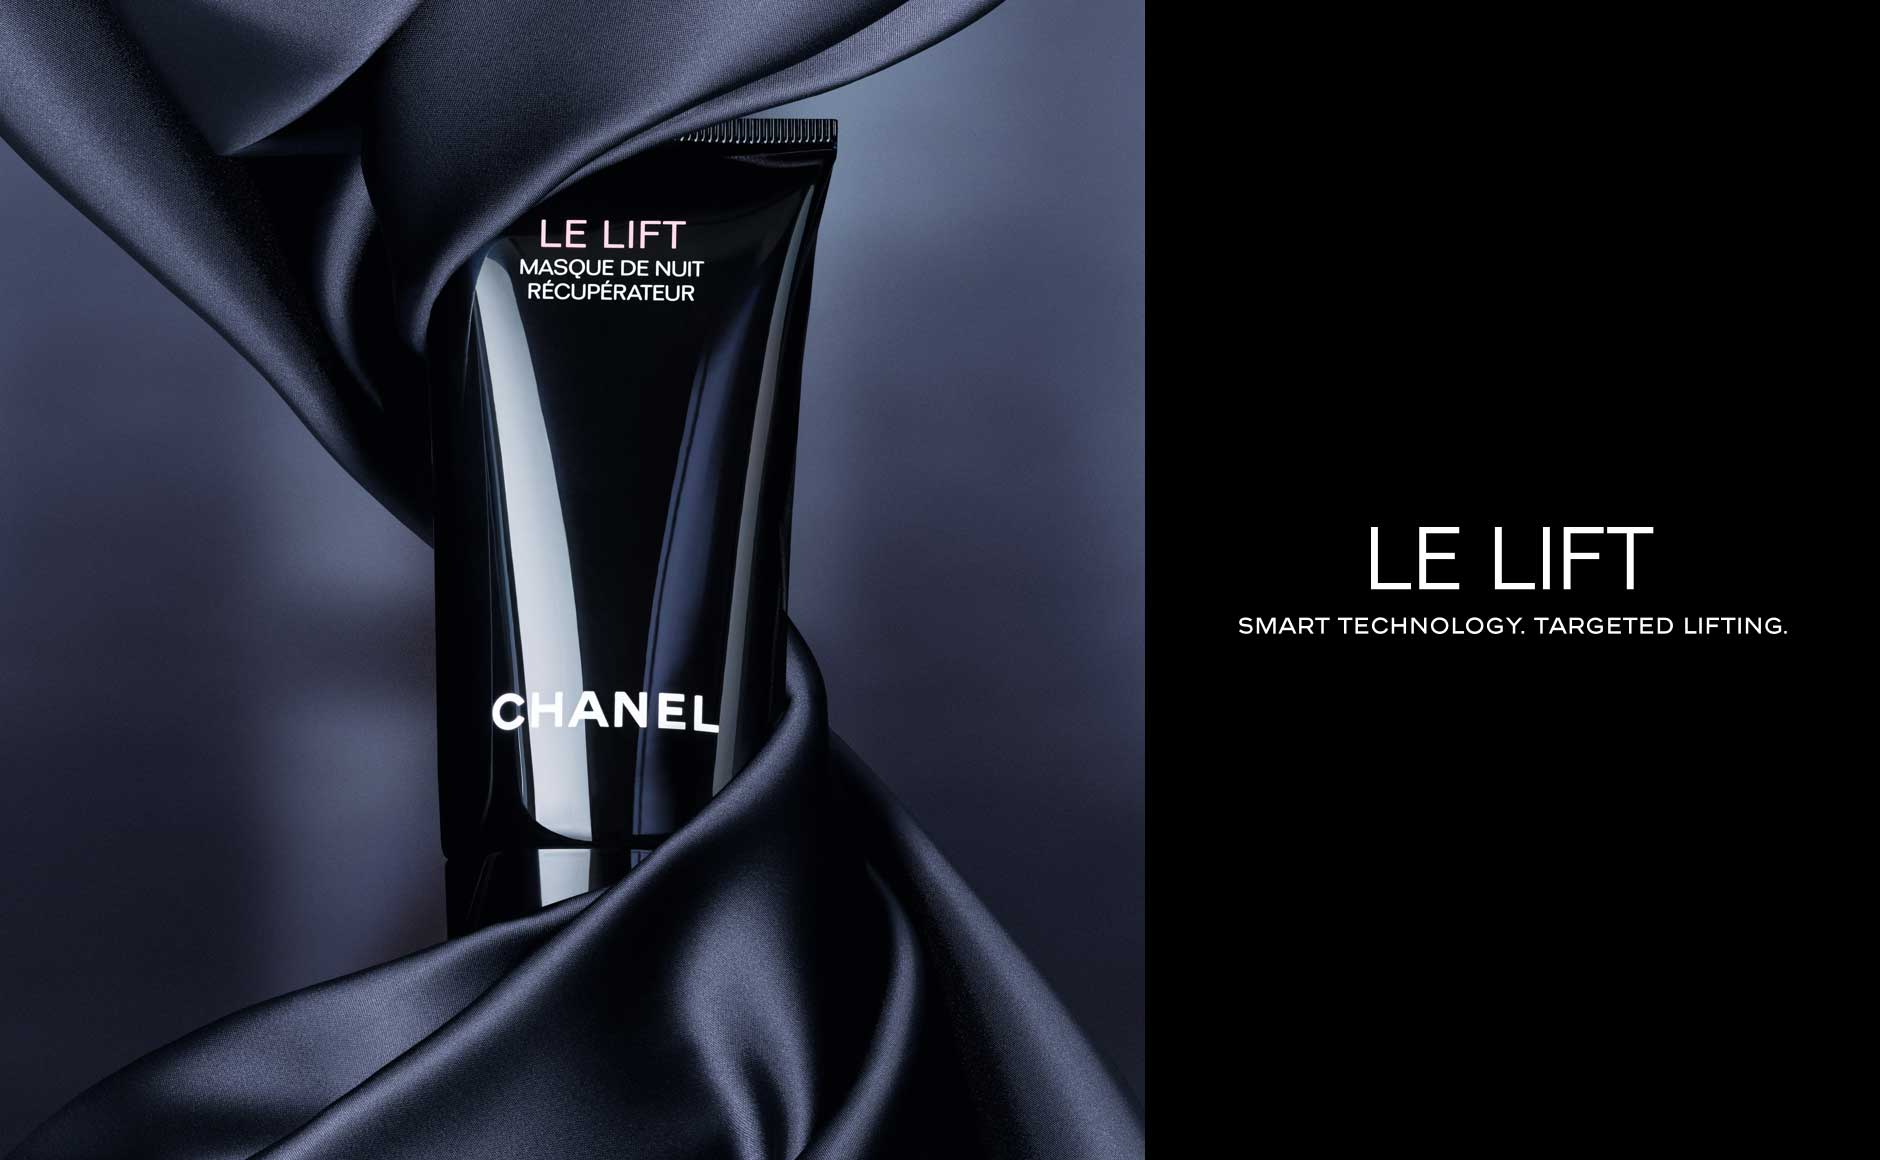 Le Lift - Smart Technology. Targeted Lifting.